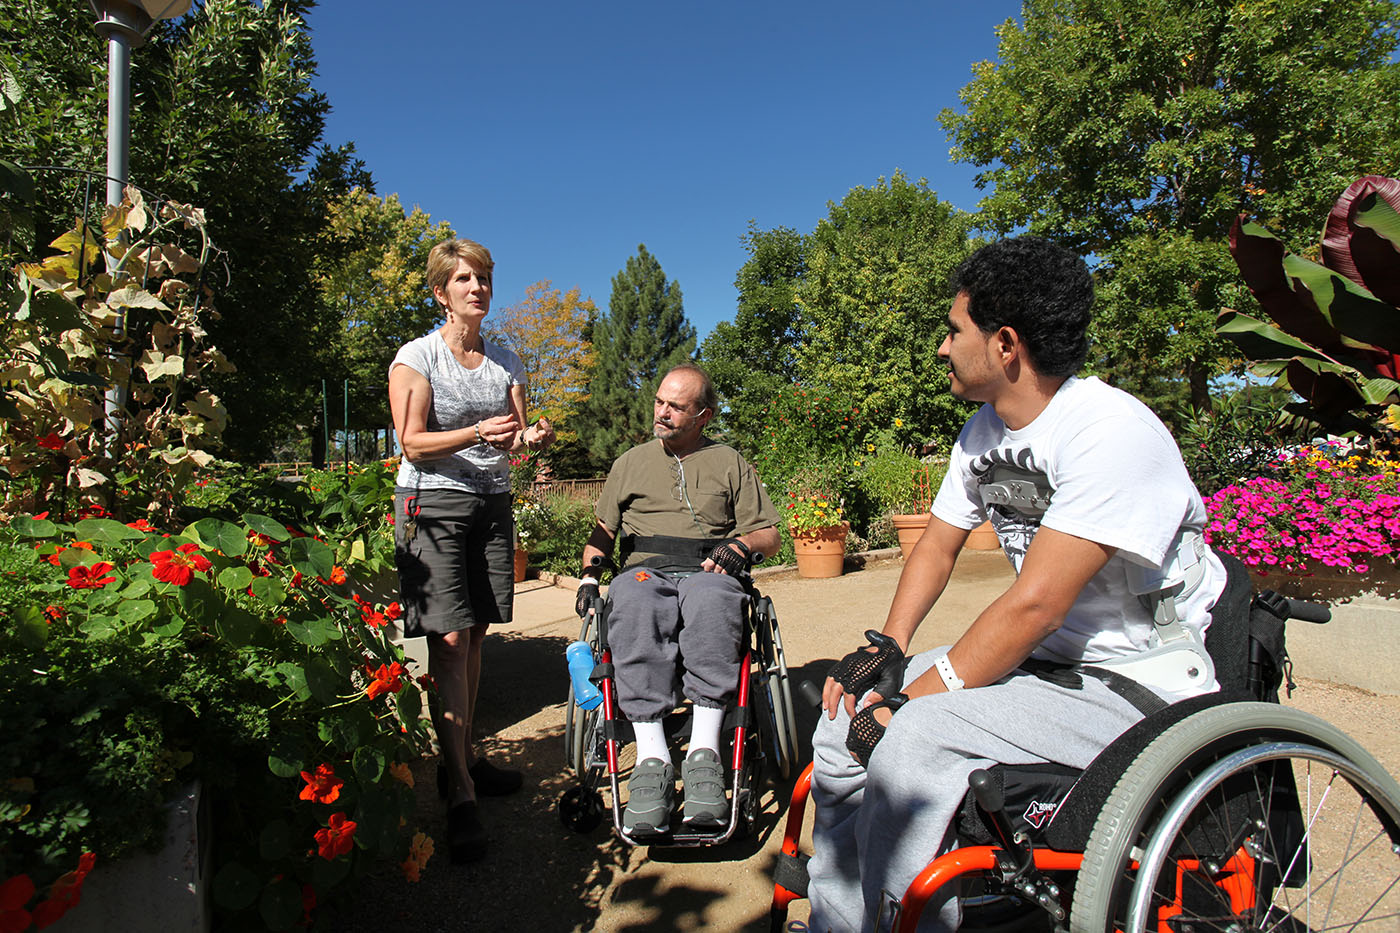 Craig Hospital | Spinal Cord Injury Rehabilitation Patients Participating in Therapeutic Recreation